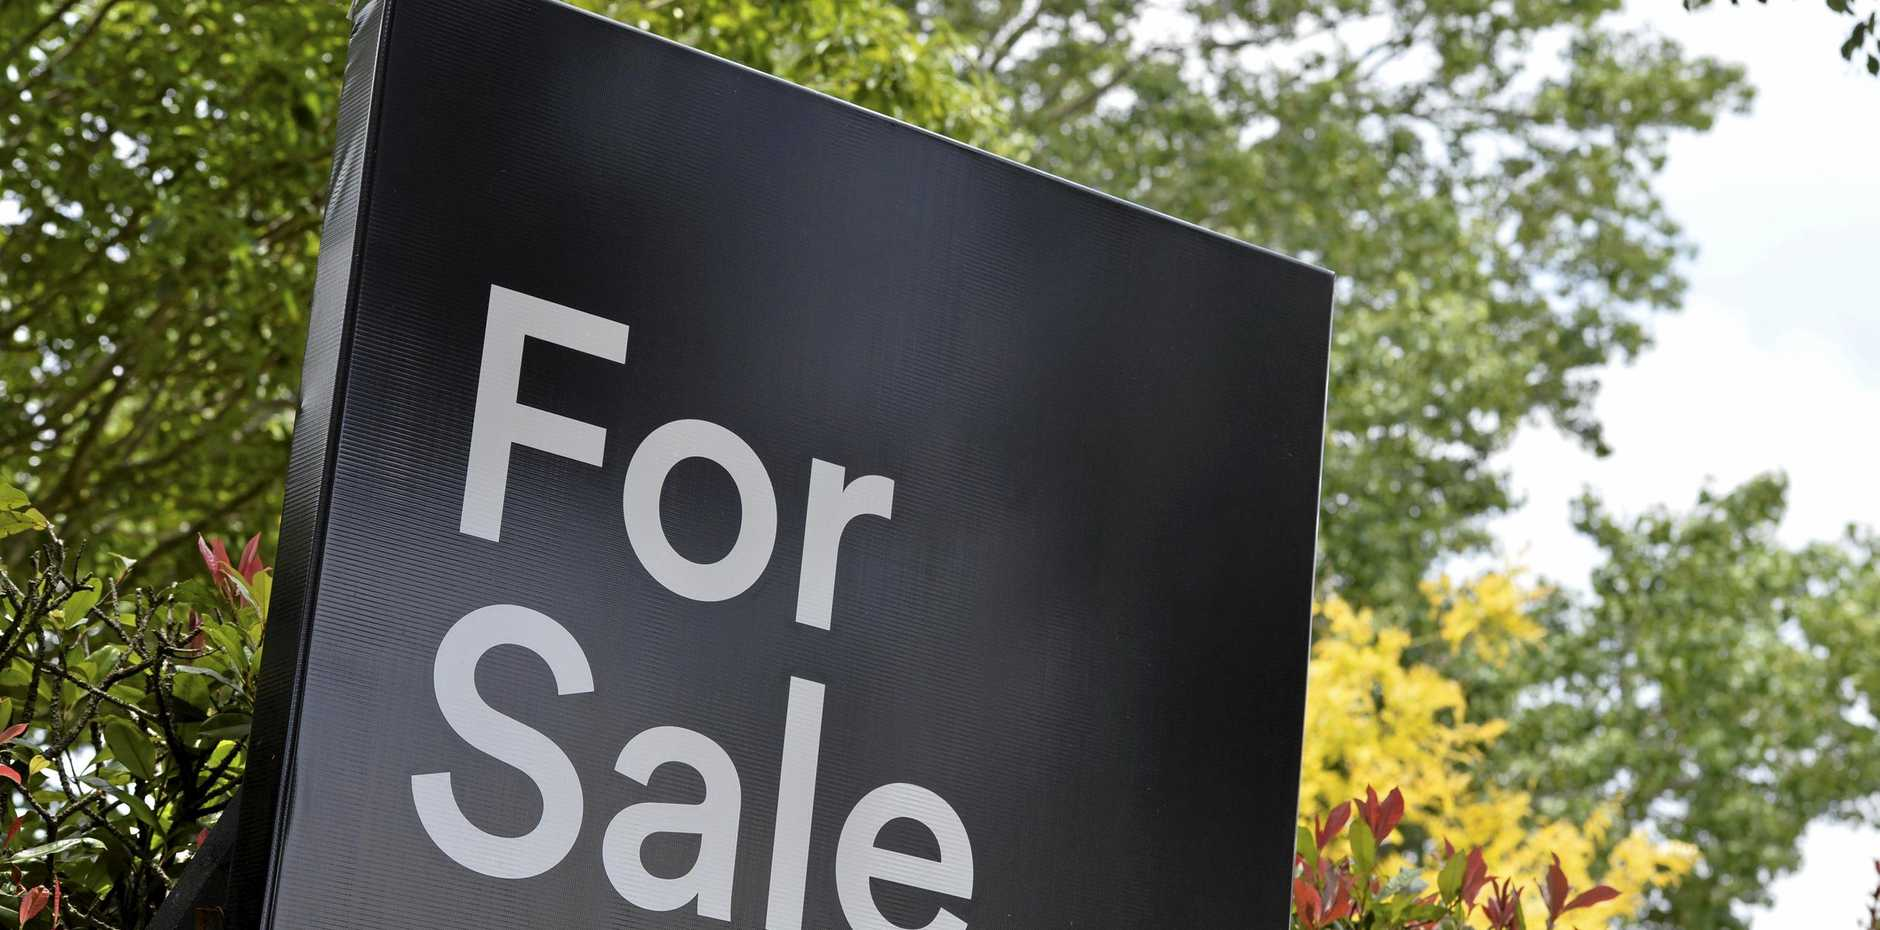 A real estate For Sale sign on a property in East Toowoomba, house for sale, Thursday, December 21, 2017.